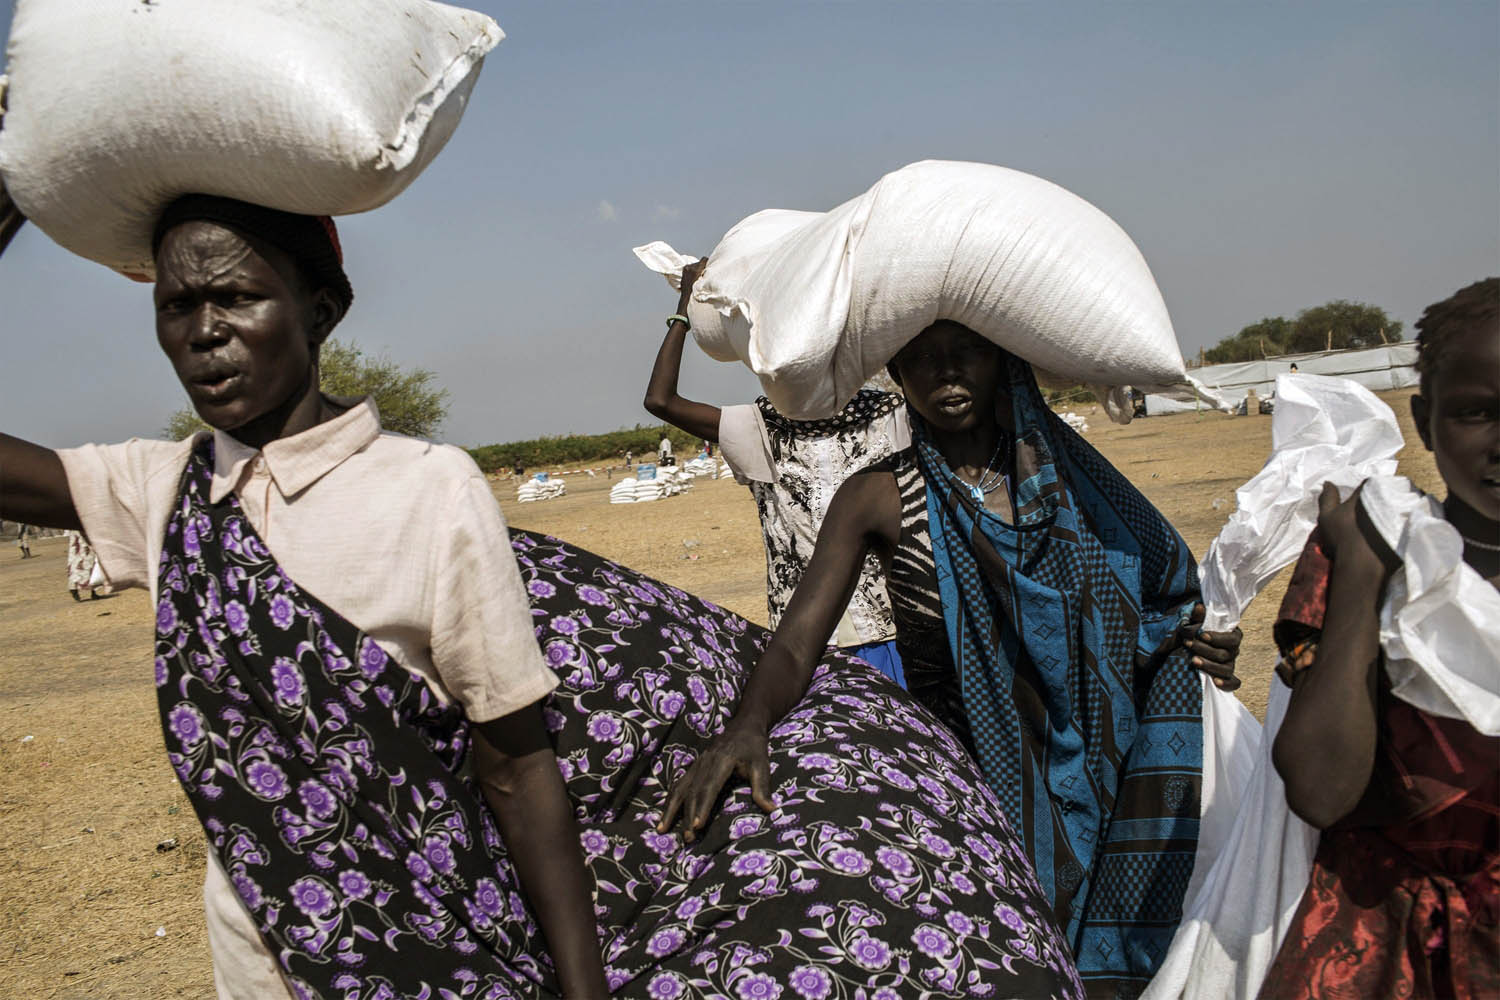 Feb. 9, 2014. South Sudanese internally displaced people (IDP) carry food supplies, distributed by the International Committee of the Red Cross (ICRC) at the Mingkaman temporary camp, South Sudan.